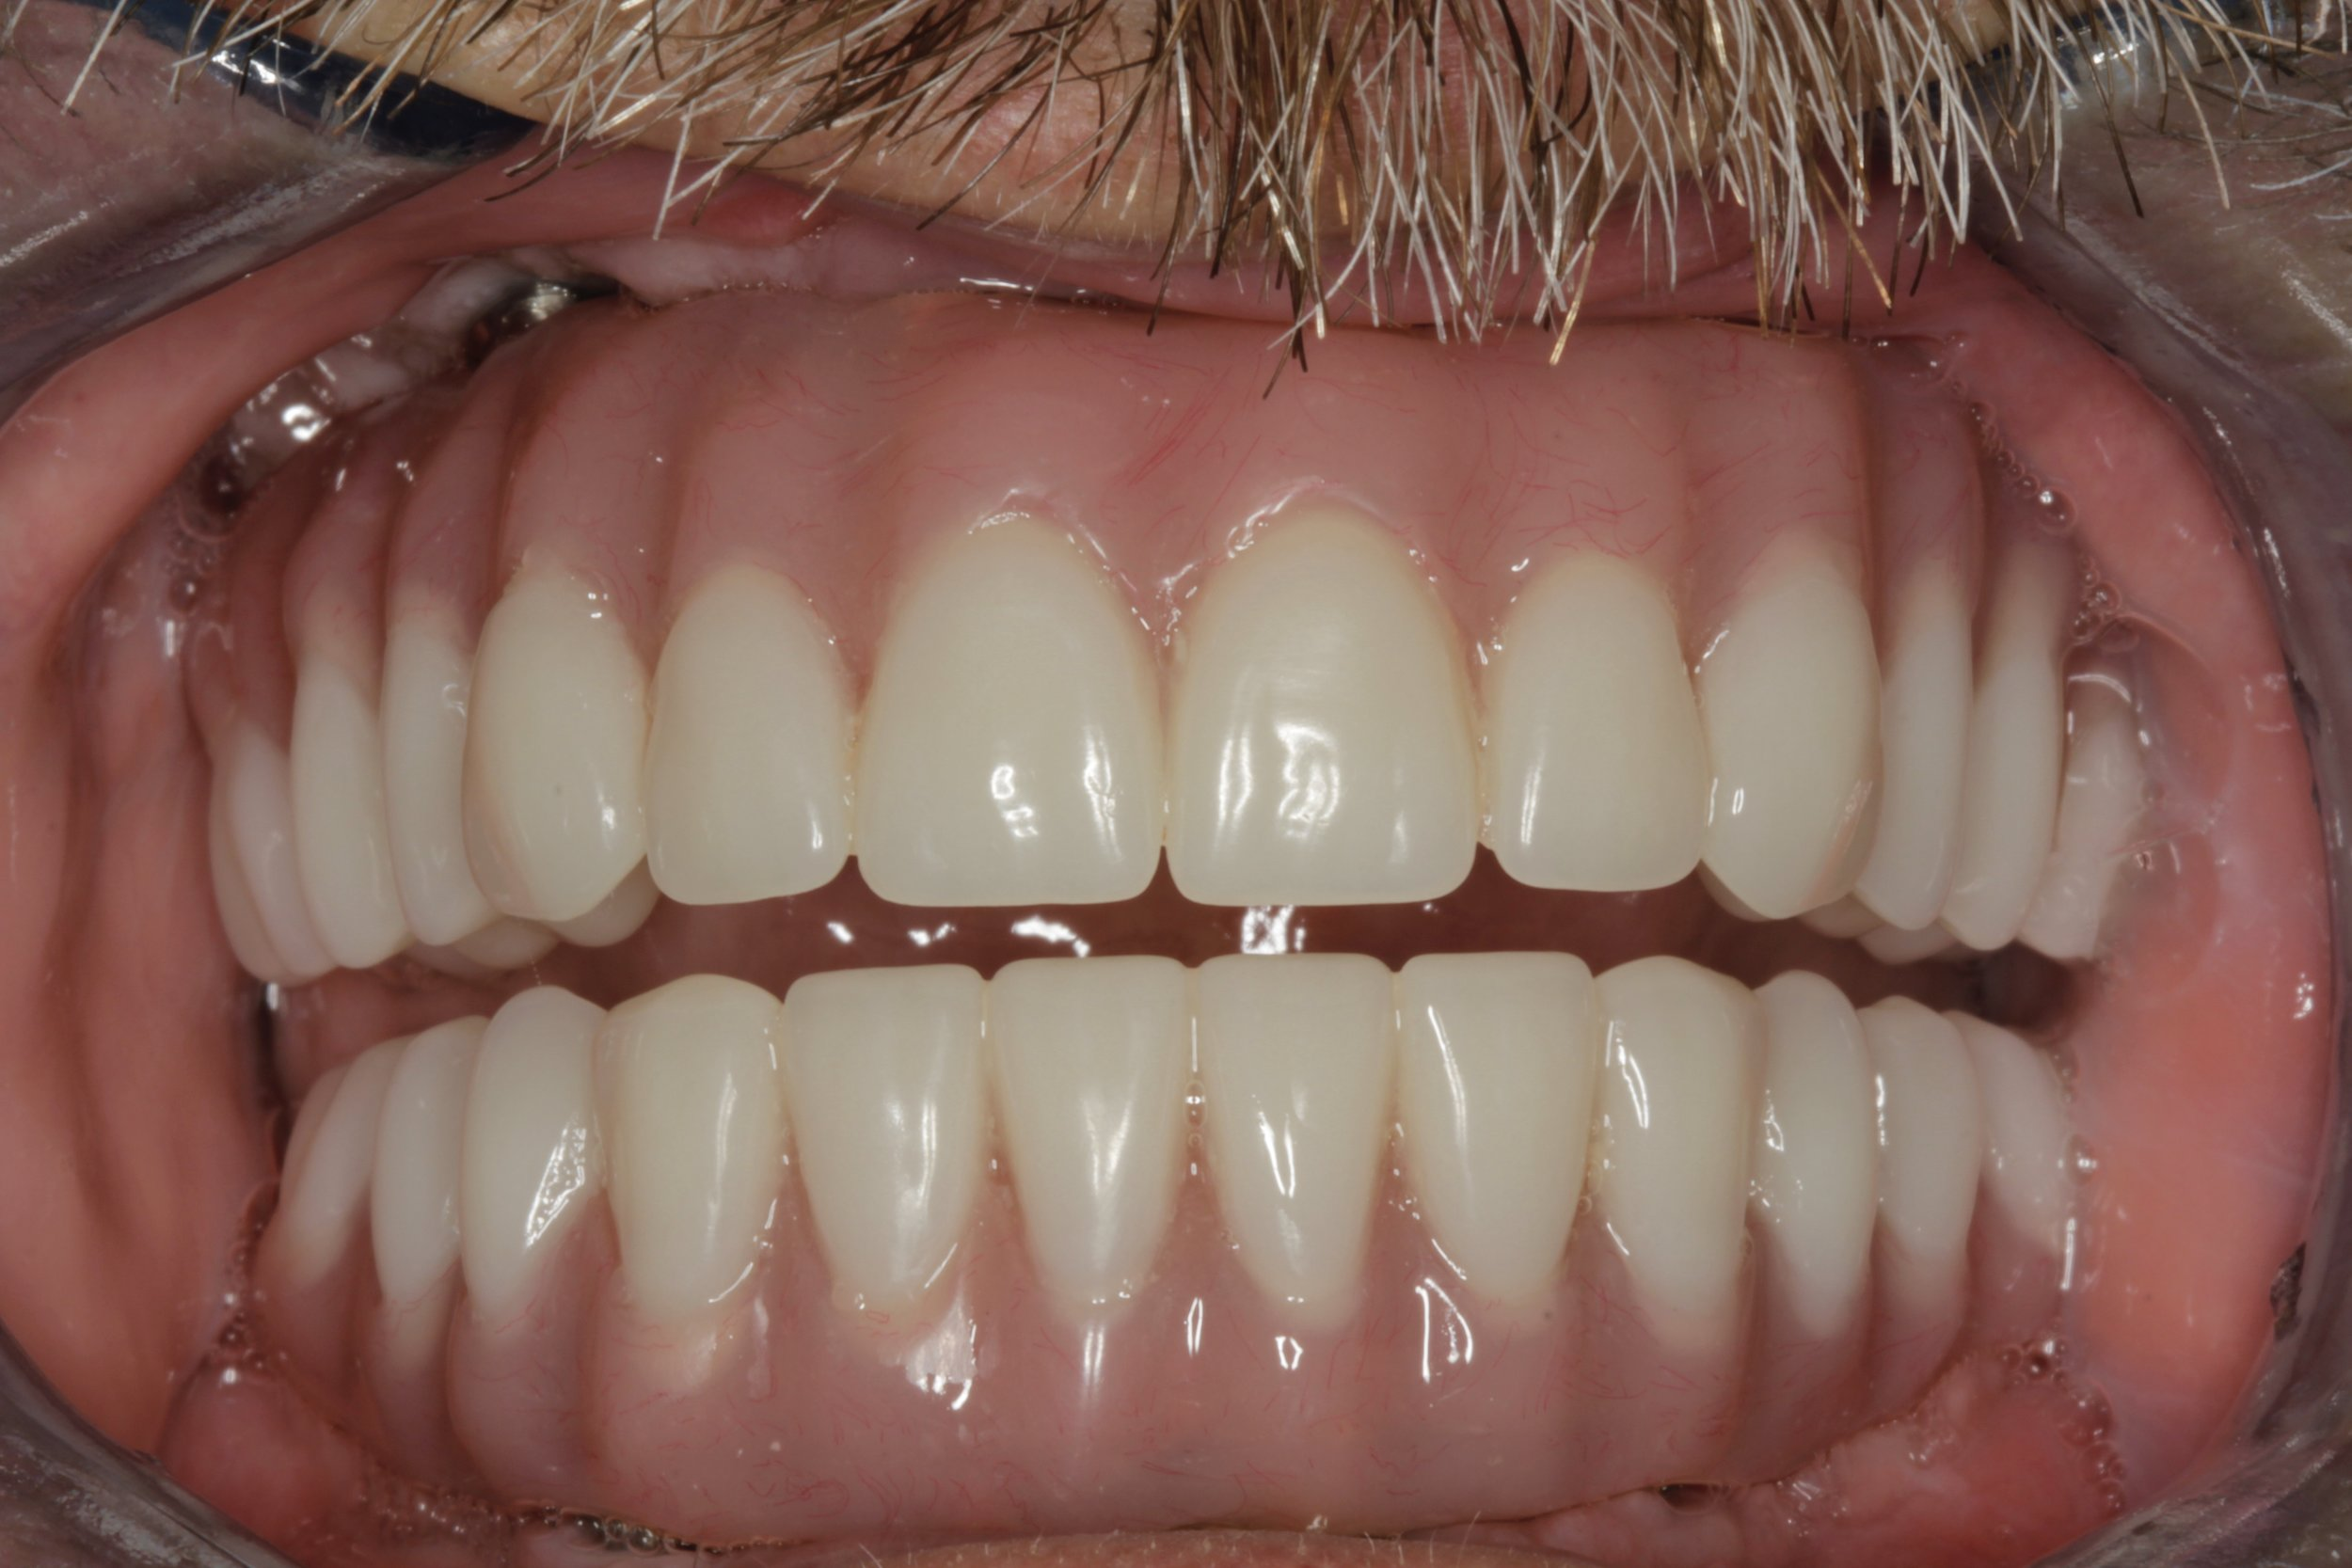 Top and bottom hybrid dentures - fixed permanently in place